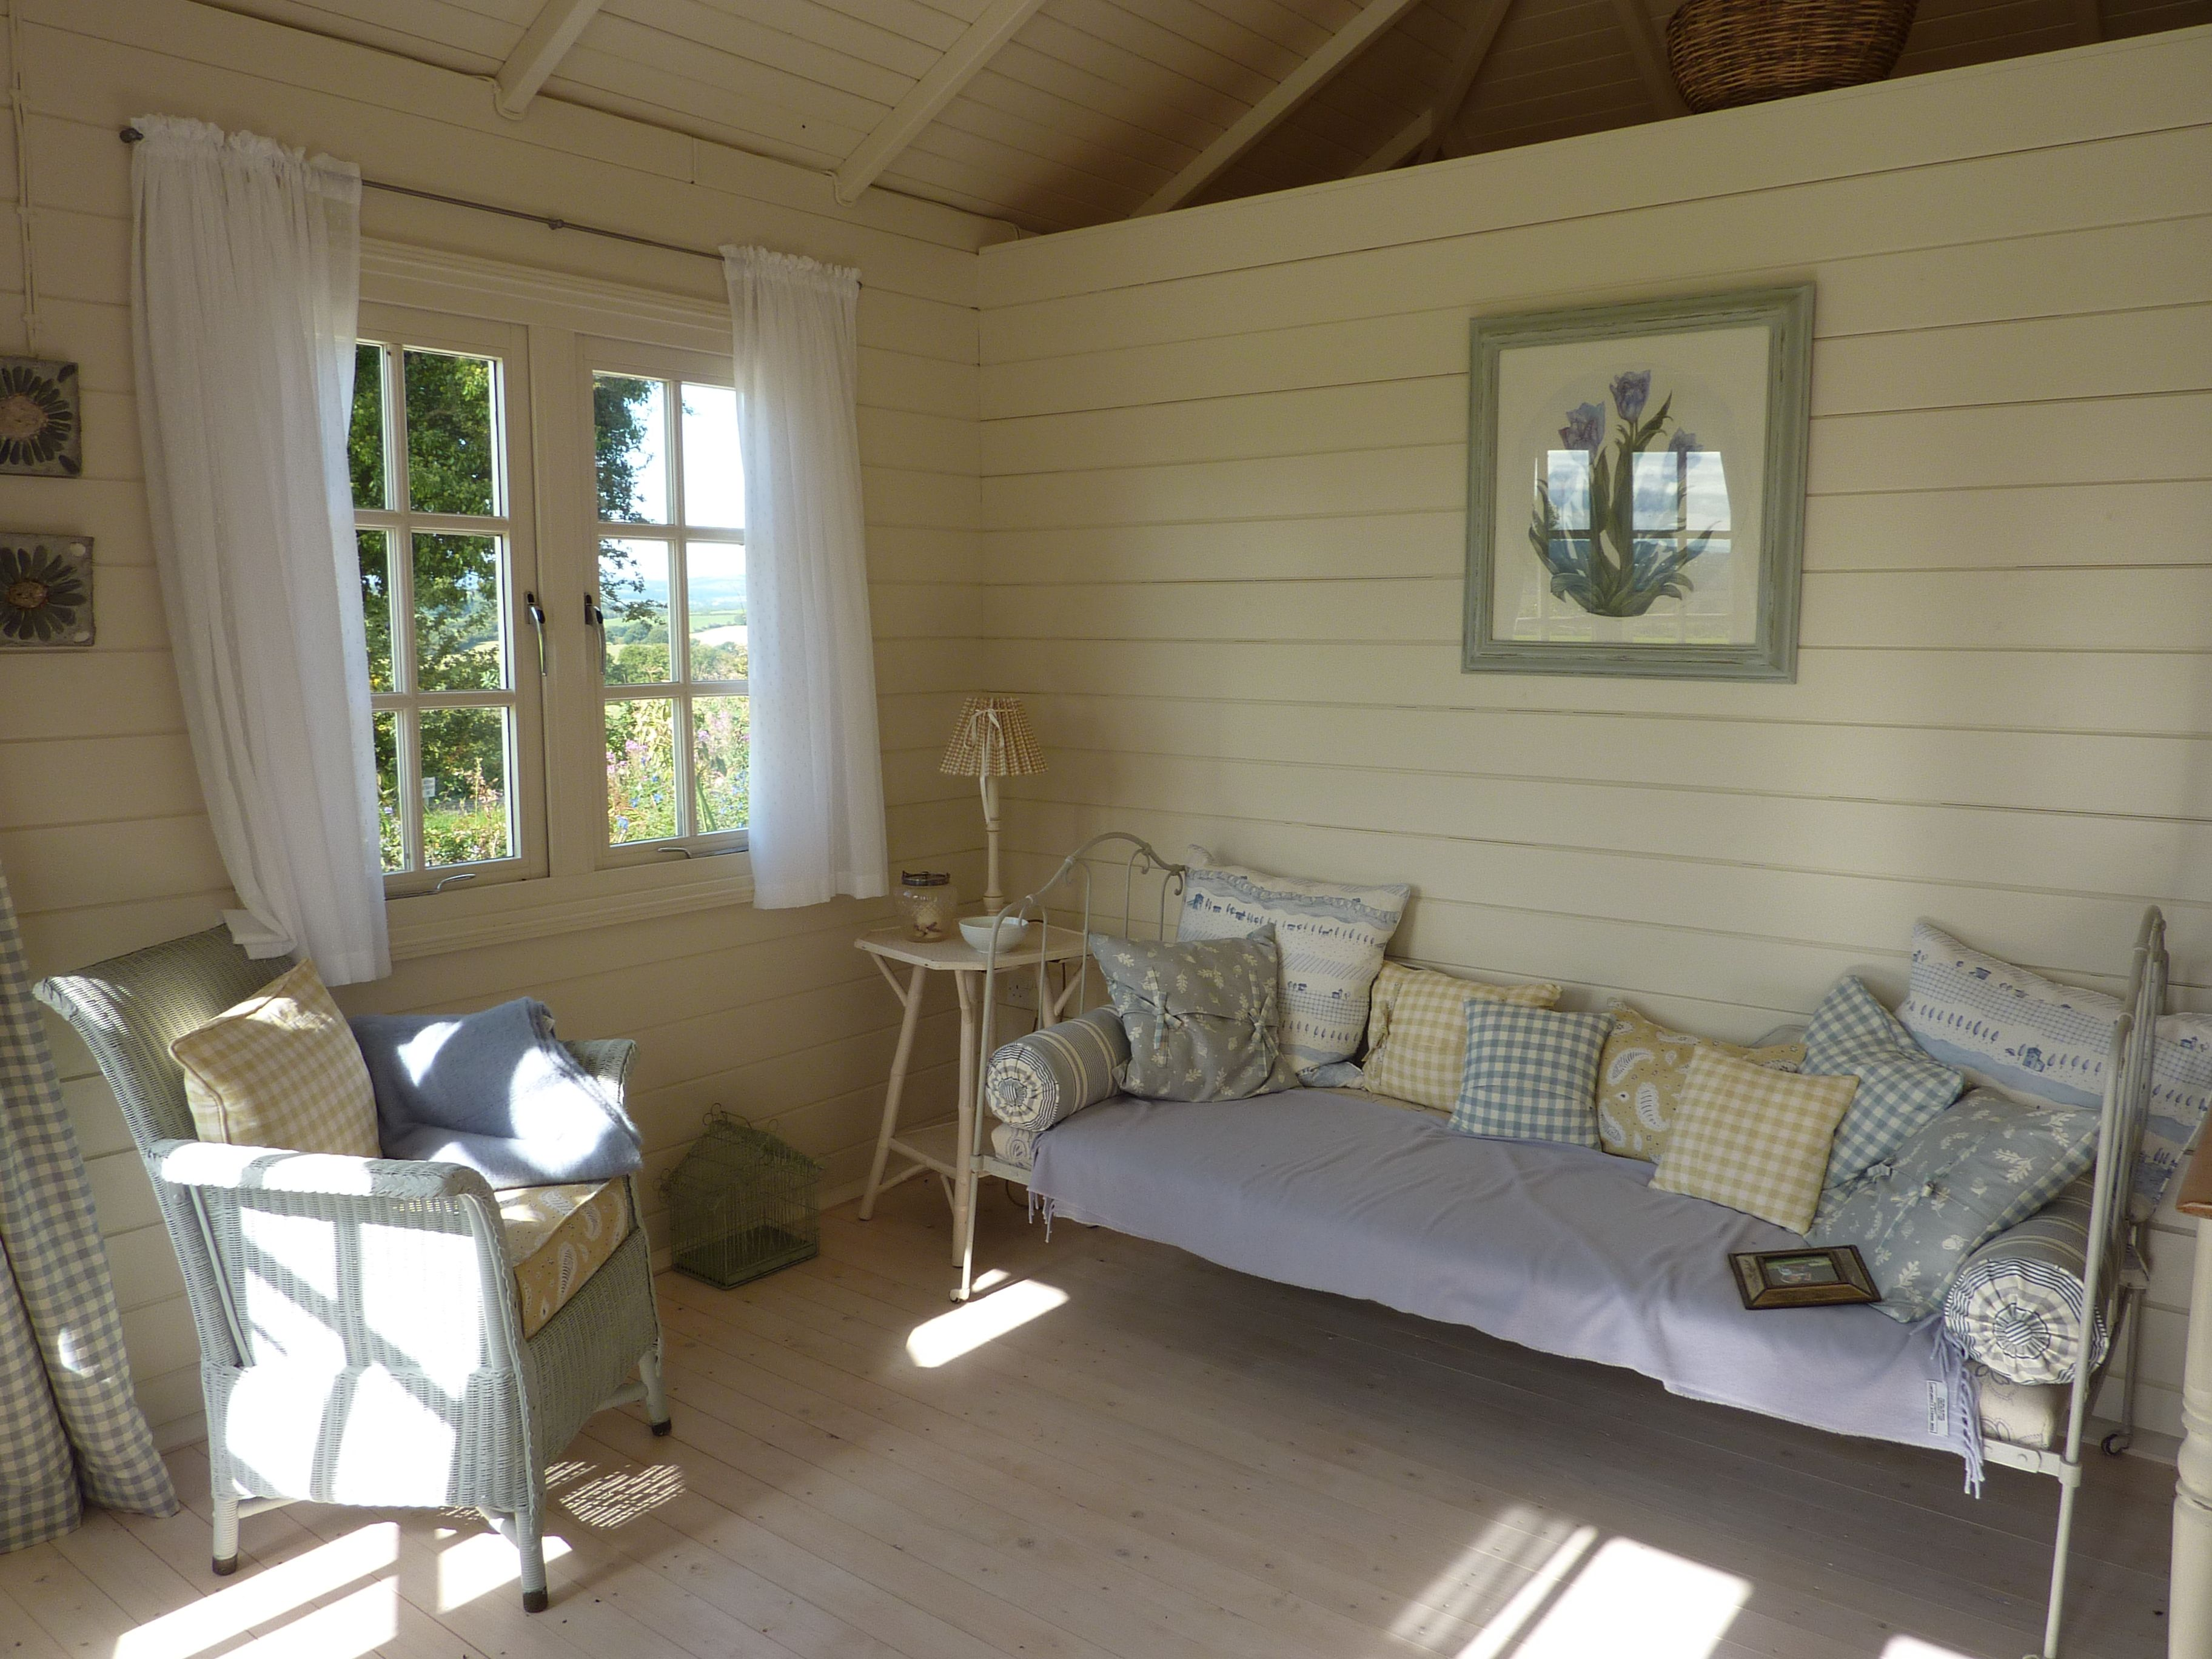 The Perfect She Shed For Girly Dreaming Relaxing Or Hobbies Summer House Interiors Shed Interior She Shed Decorating Ideas